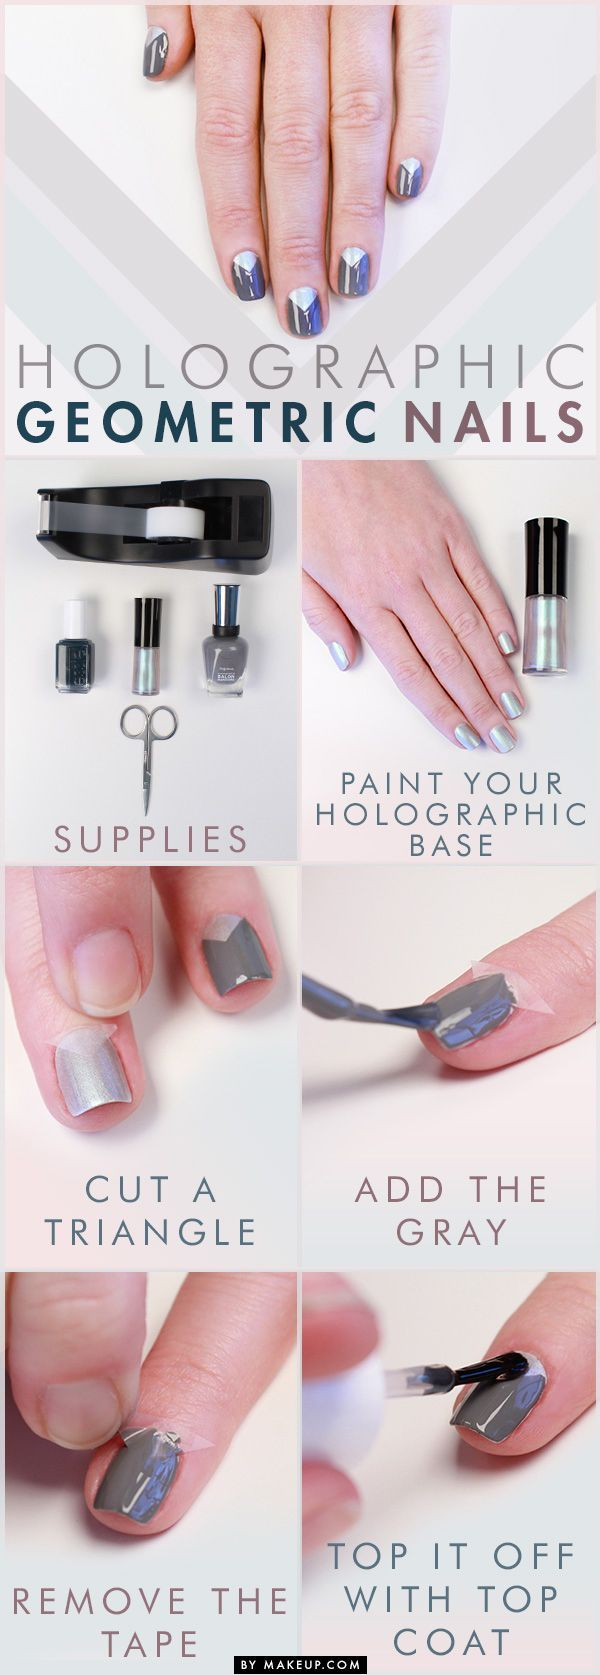 29 best Nails images on Pinterest | Make up looks, Nail design and ...